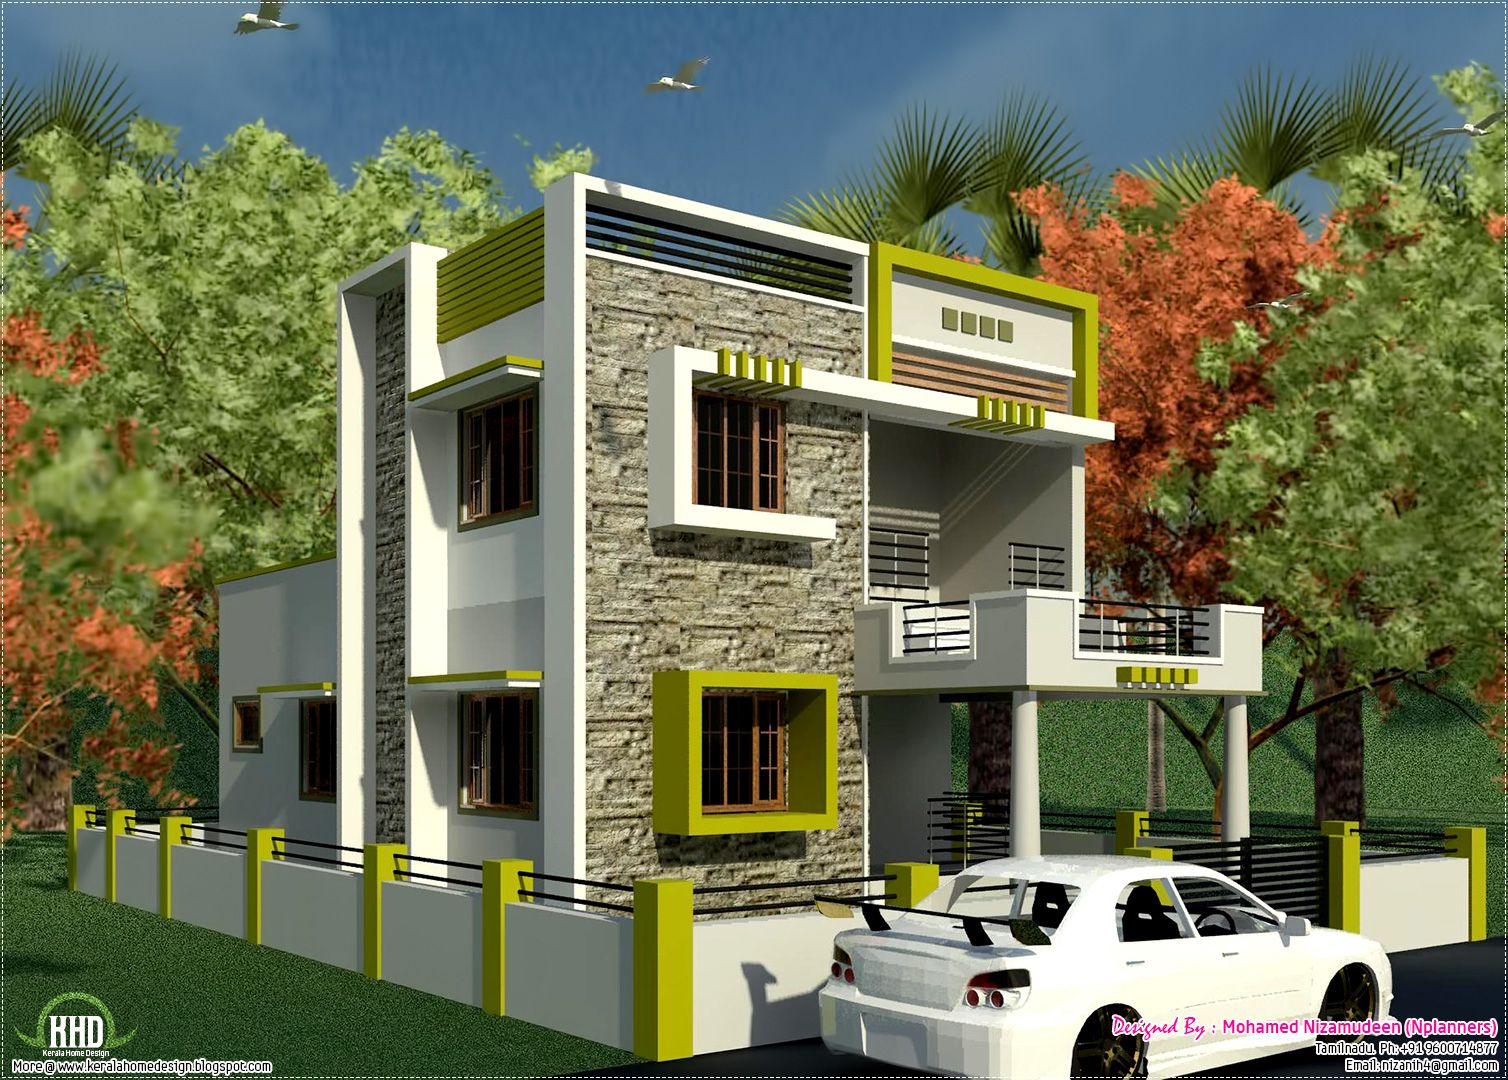 Small house with car park design tobfav com ideas for for Home outside design